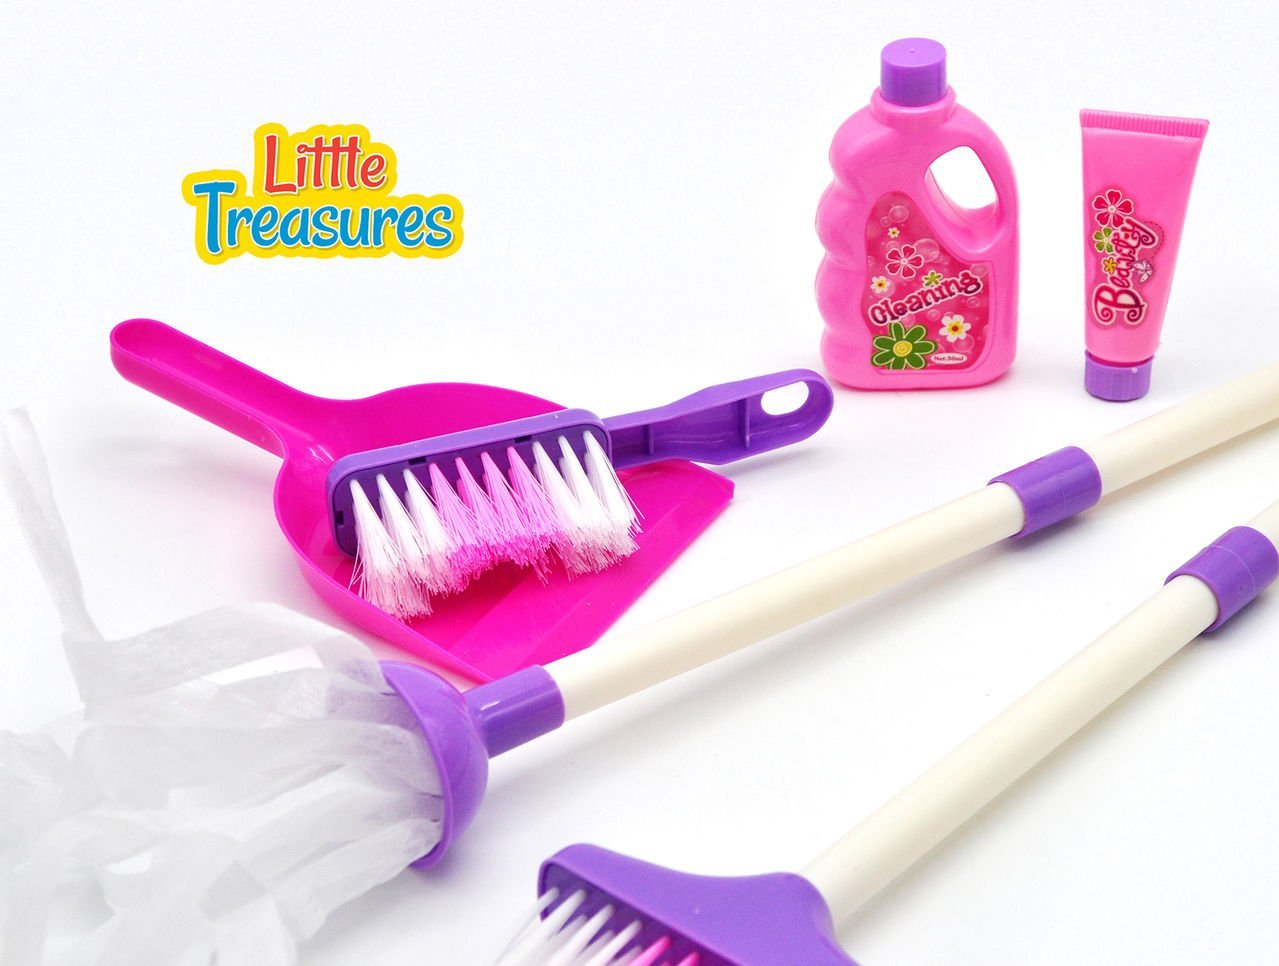 My little helper cleaning play toy set from Little Treasures – Complete with mop, broom, cleaning solutions, hand-broom and dustpan –play set for children 3+ kids have lots of fun helping clean!